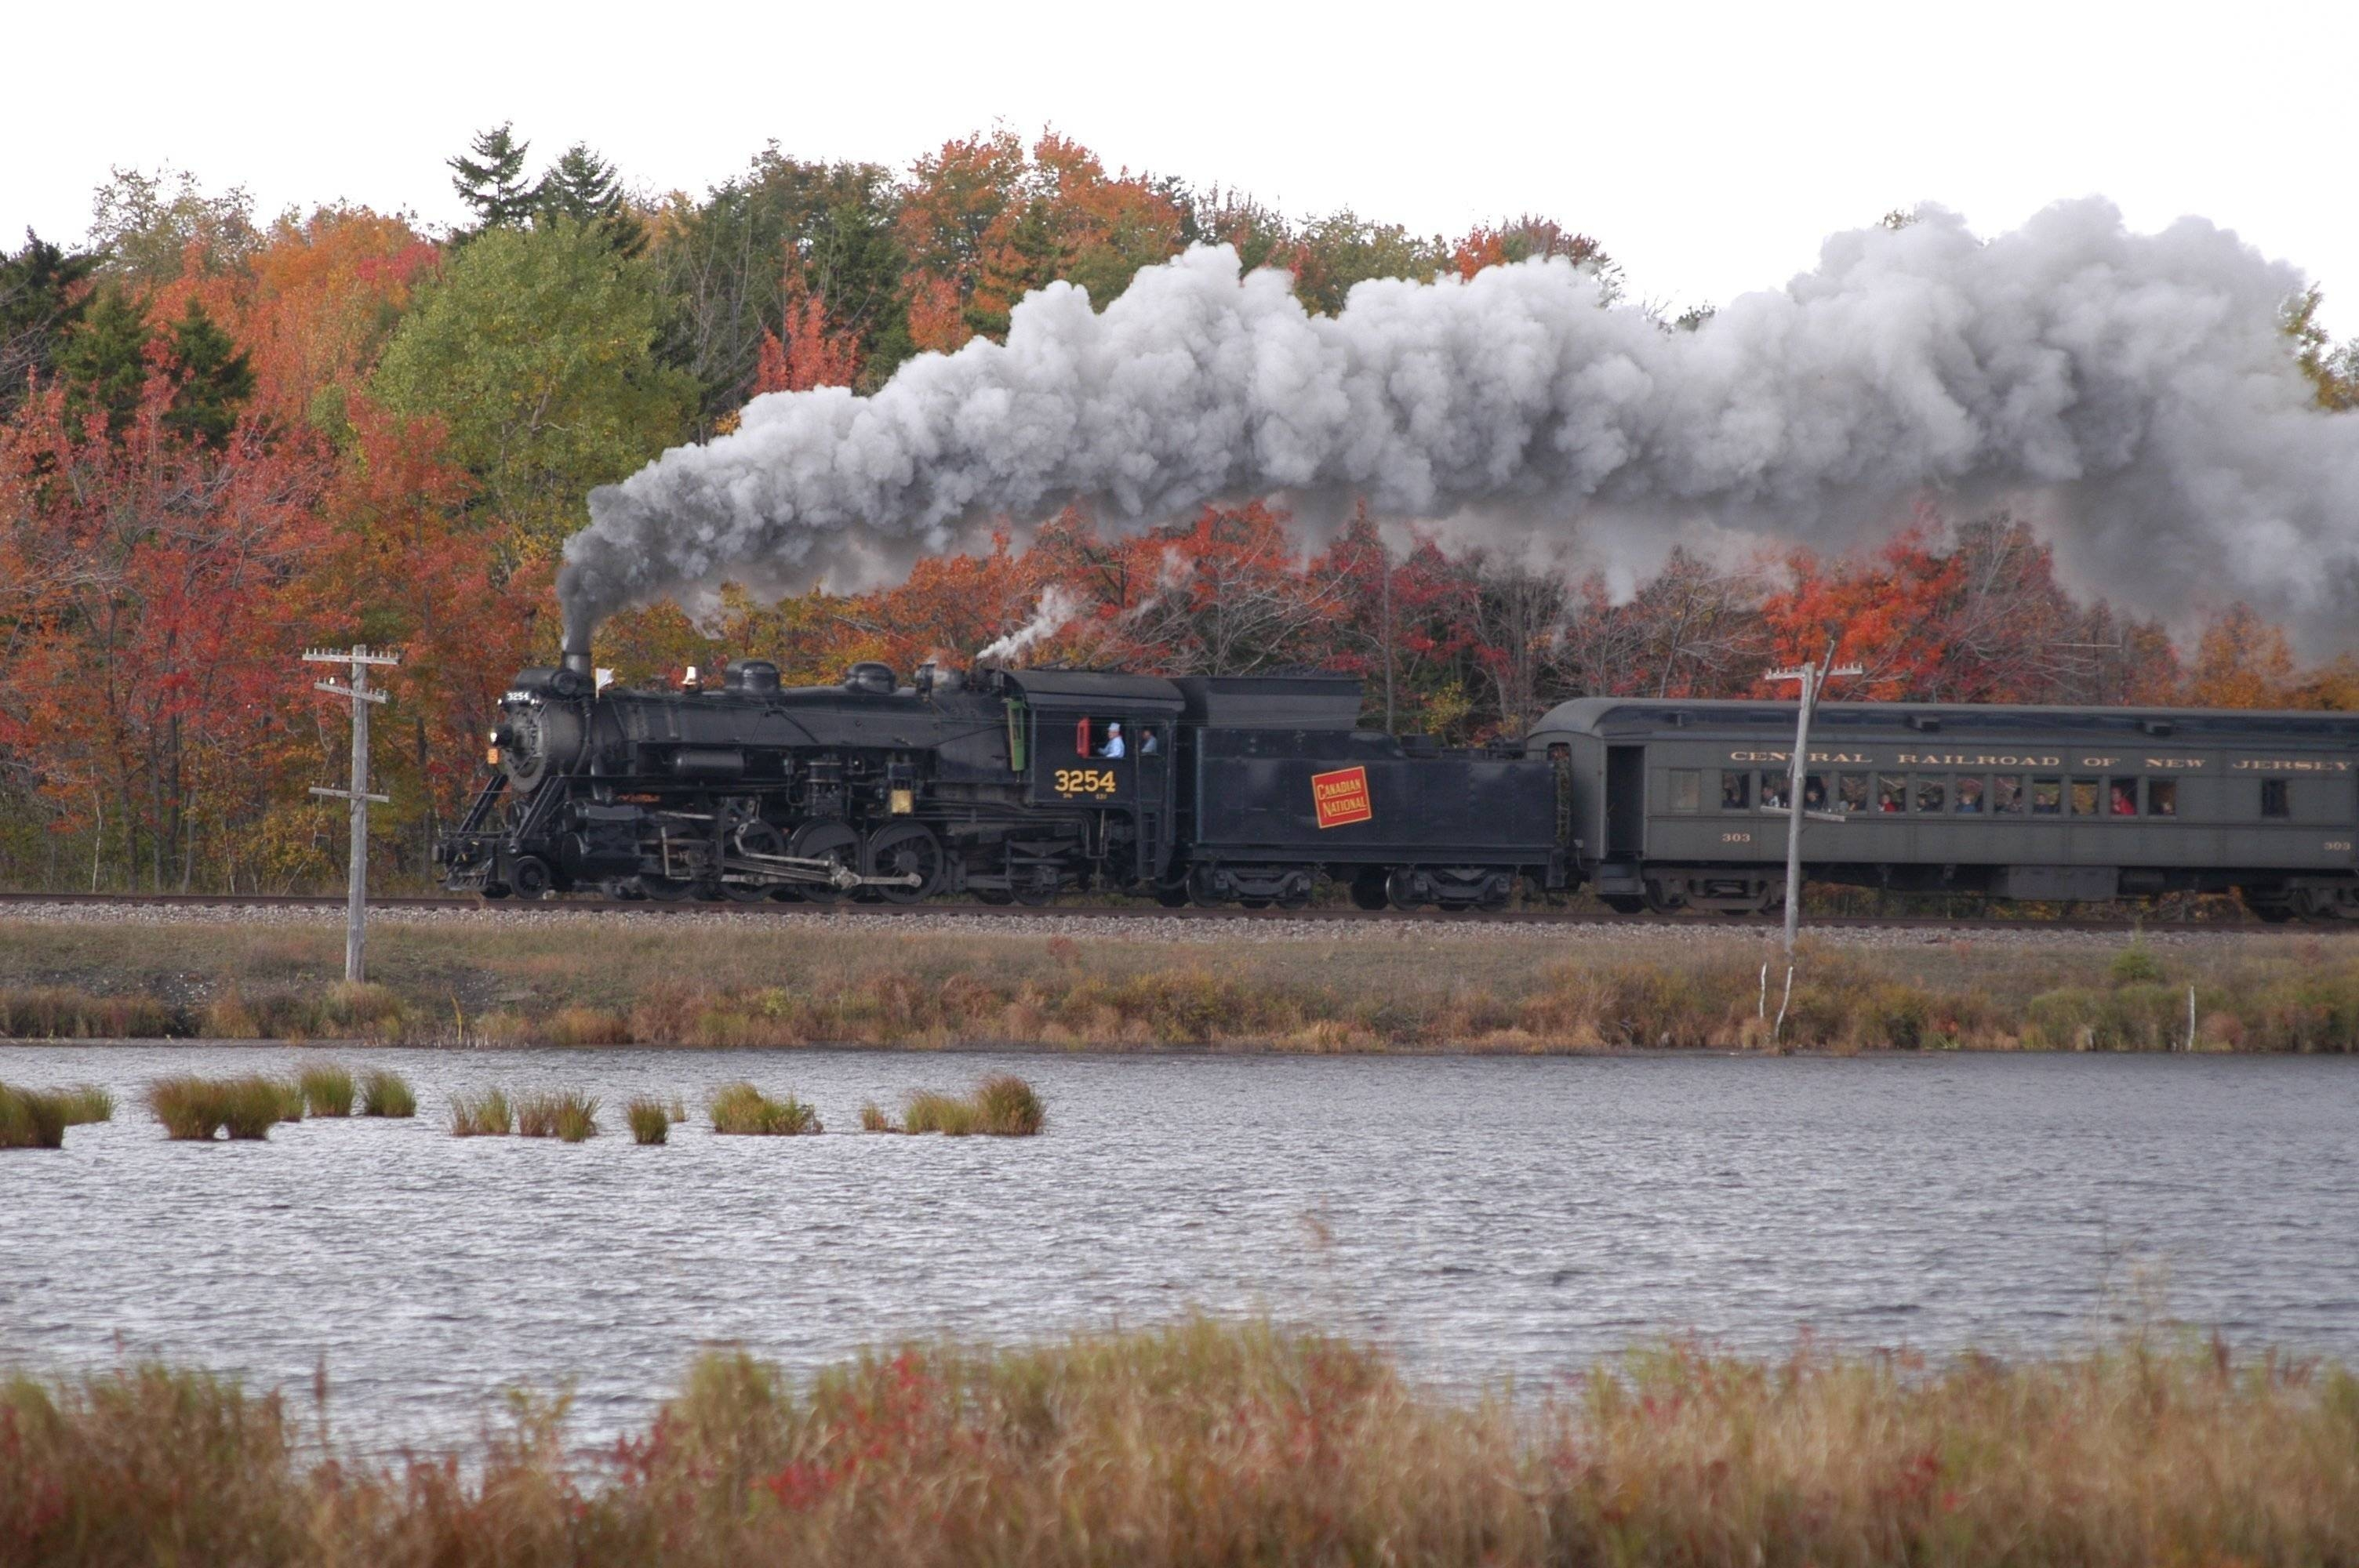 Photo of steam engine pulling several cars on a local excursion.  Fall foliage is in the background and lots of smoke coming out of the locomotive's stack.